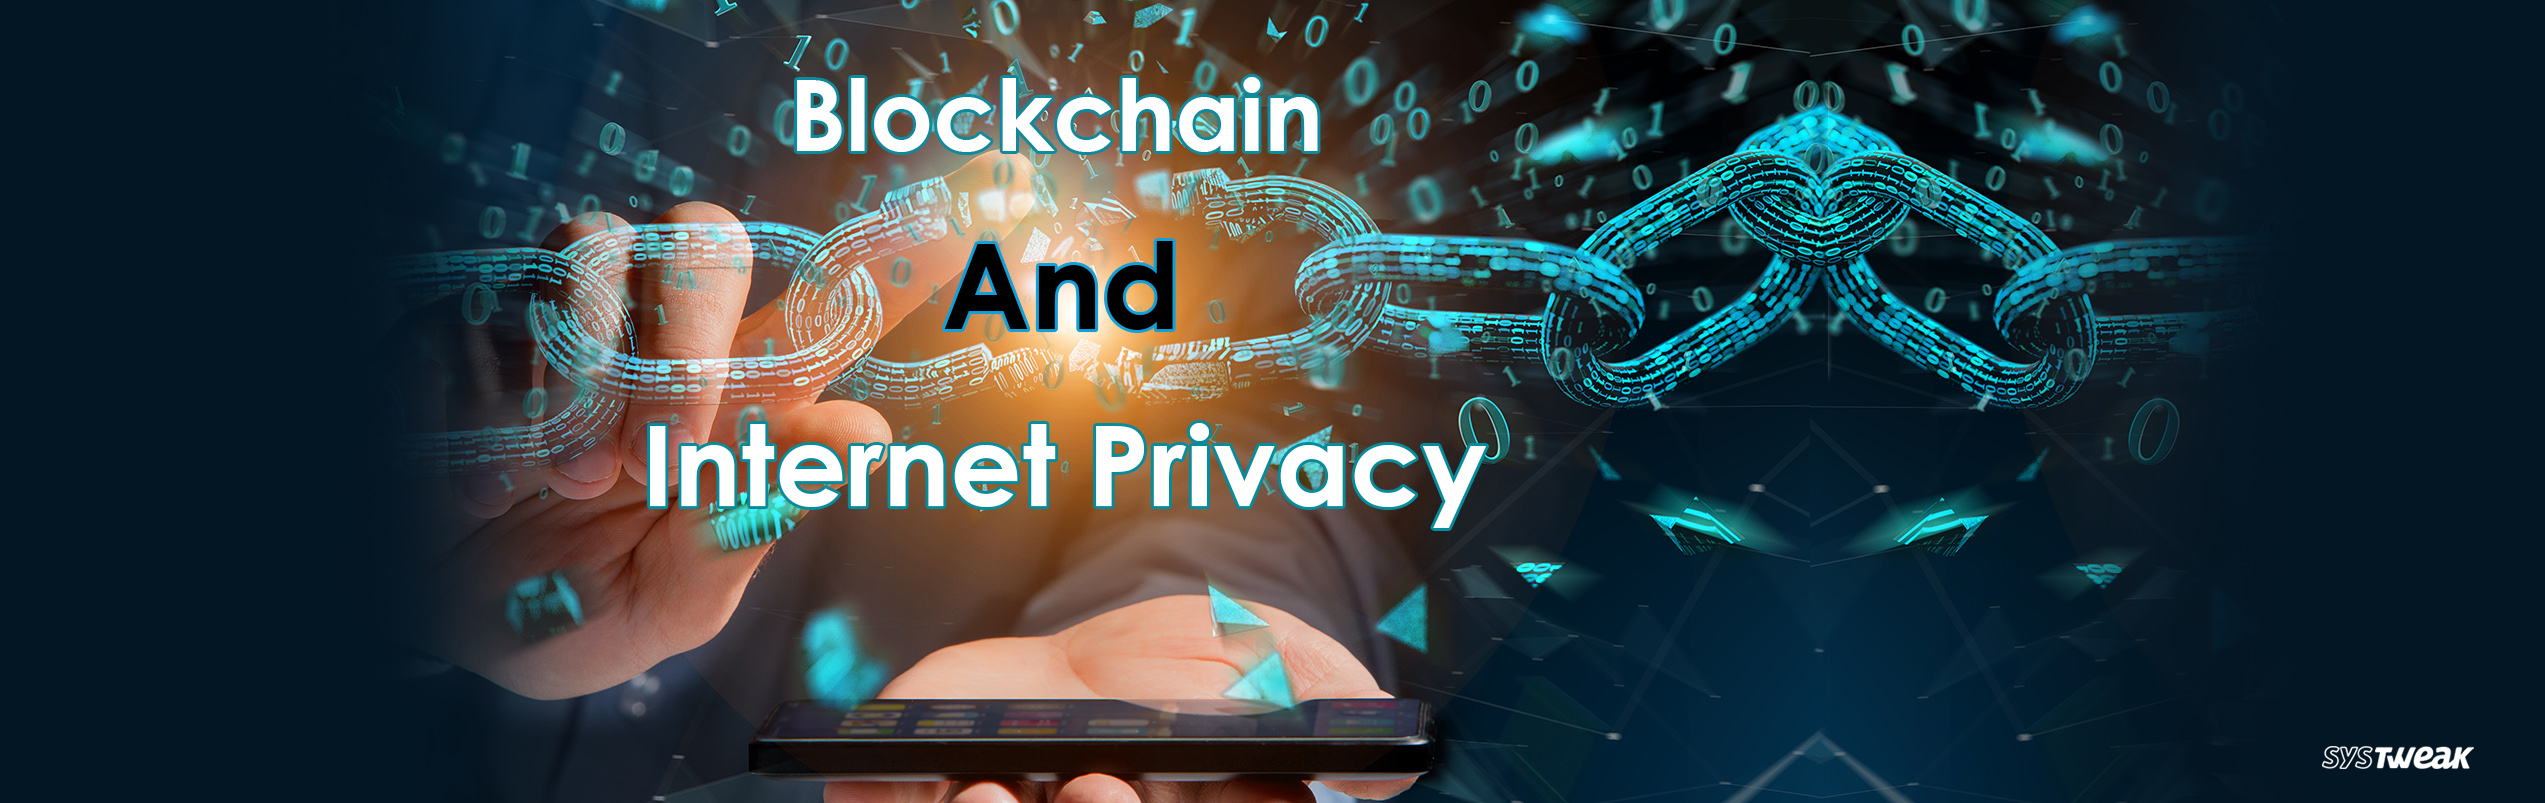 Will Sovrin Network Blockchain Resolve Problem Of Internet Privacy?